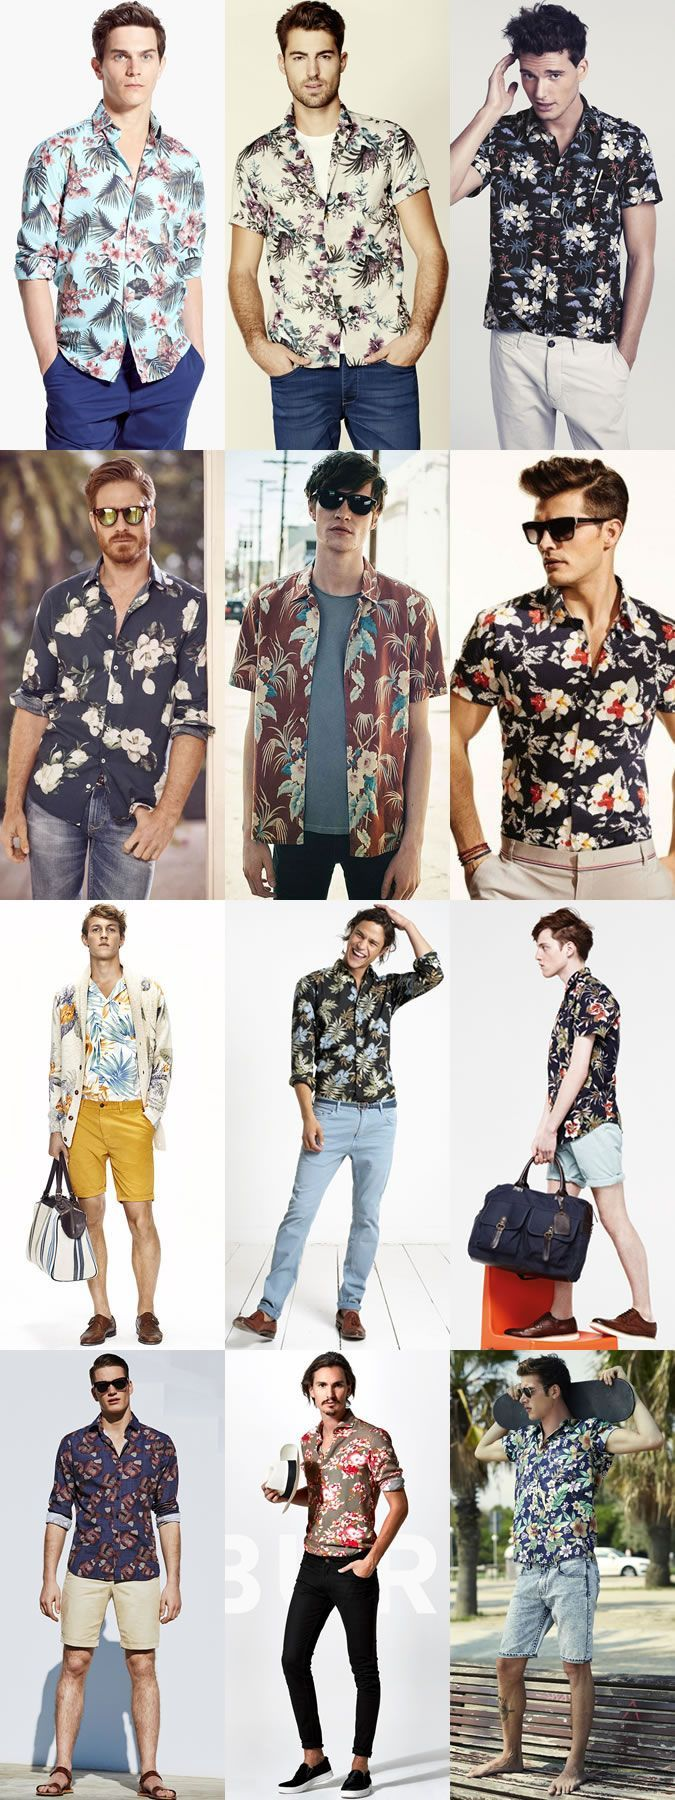 20 Floral Shirt Outfits For Men picture